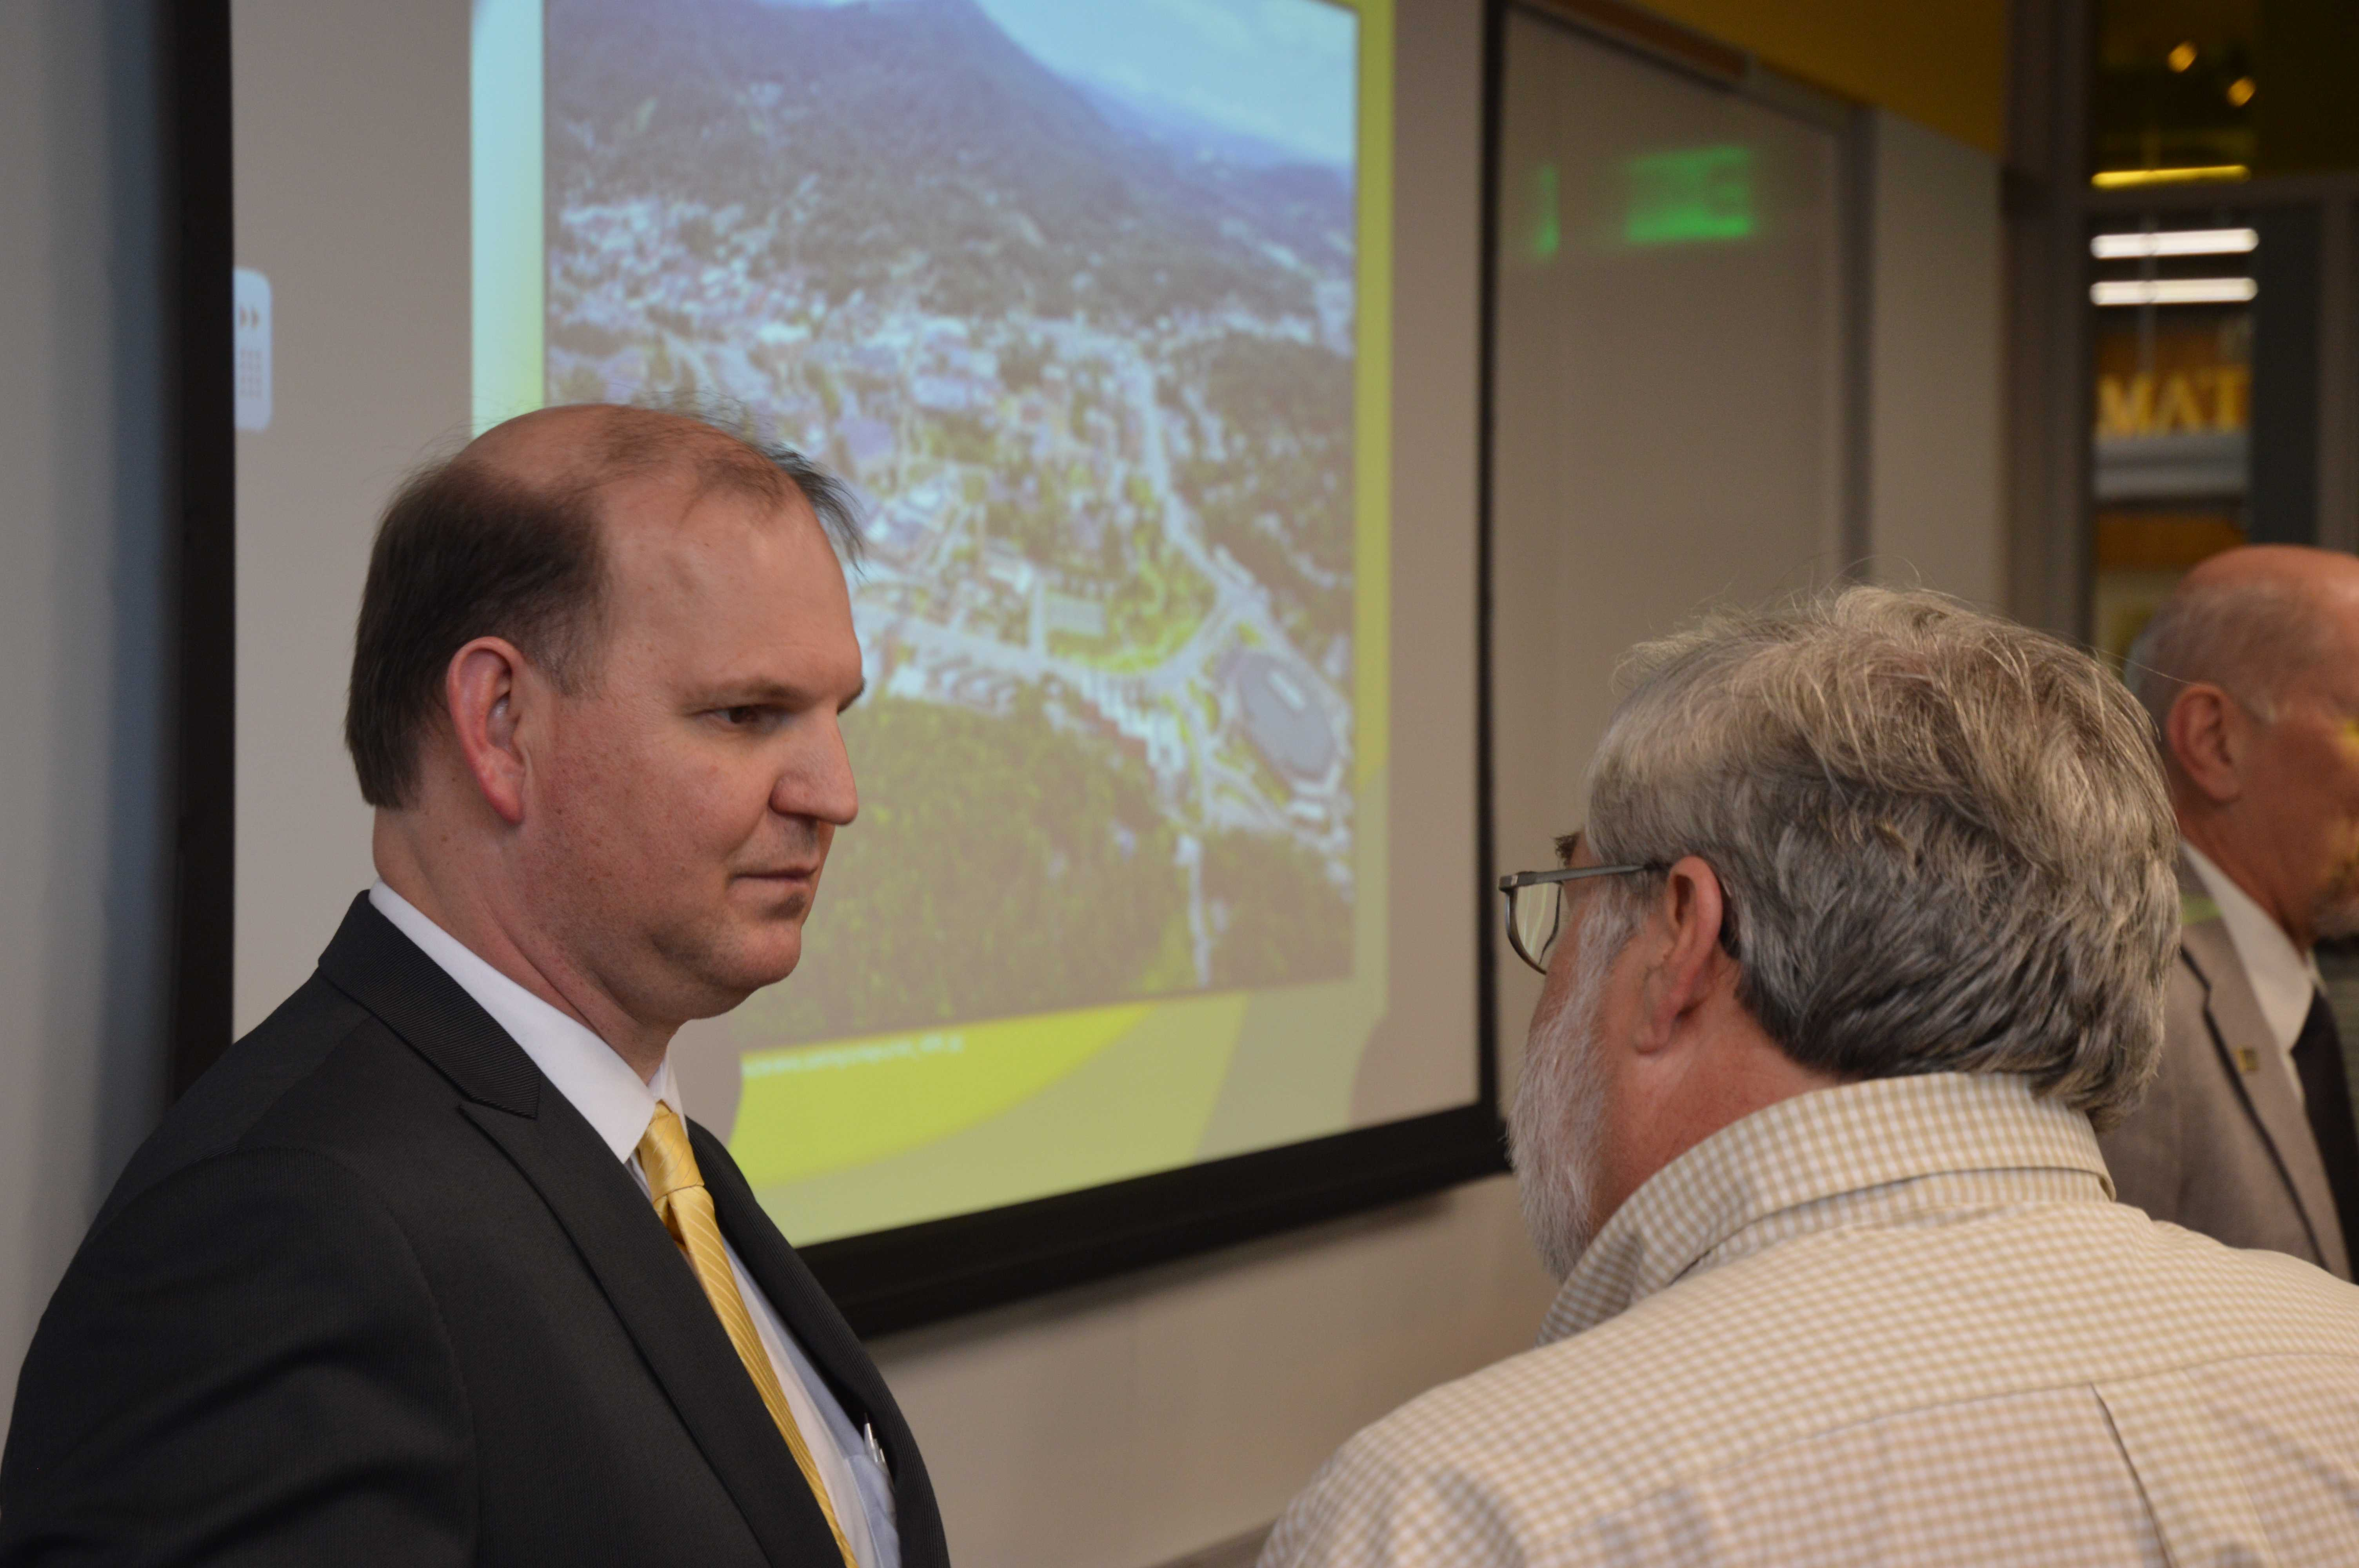 Darrell Kruger (left) speaks with an Appalachian State University faculty member after his open forum on Monday, March 16. Chancellor Sheri N. Everts announced on Wednesday that Kruger accepted the position offer and will effectively begin his tenure July 1, 2015.  Gerrit Van Genderen | The Appalachian